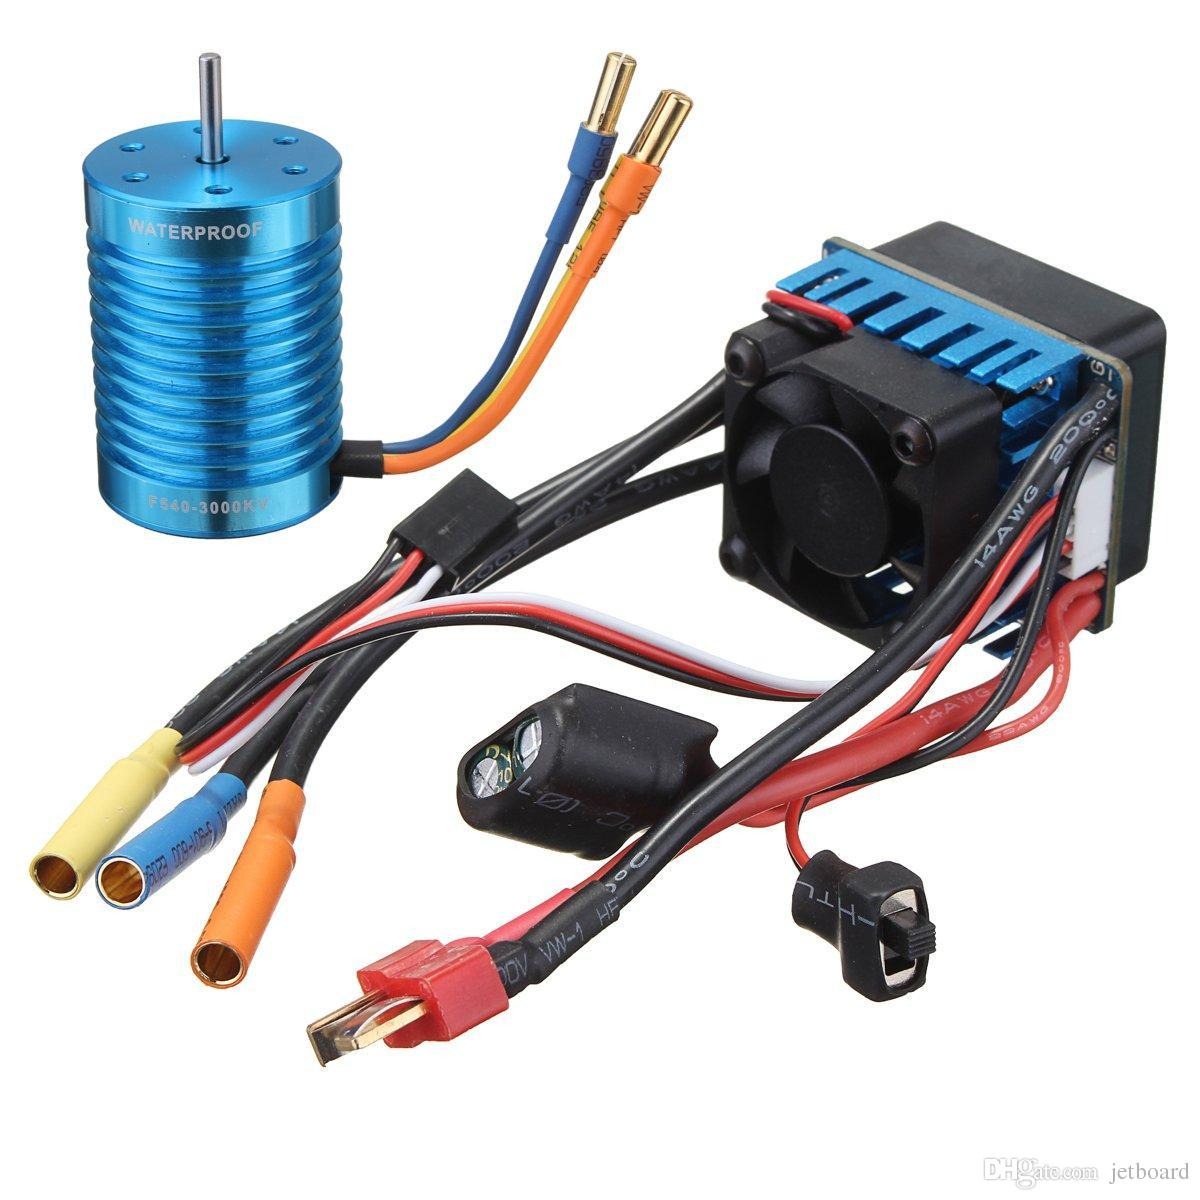 Racing 60A ESC Speed Controller F540-3000KV Brushless Motor For 1/10 1/12 RC Car/Longboard/skateboard